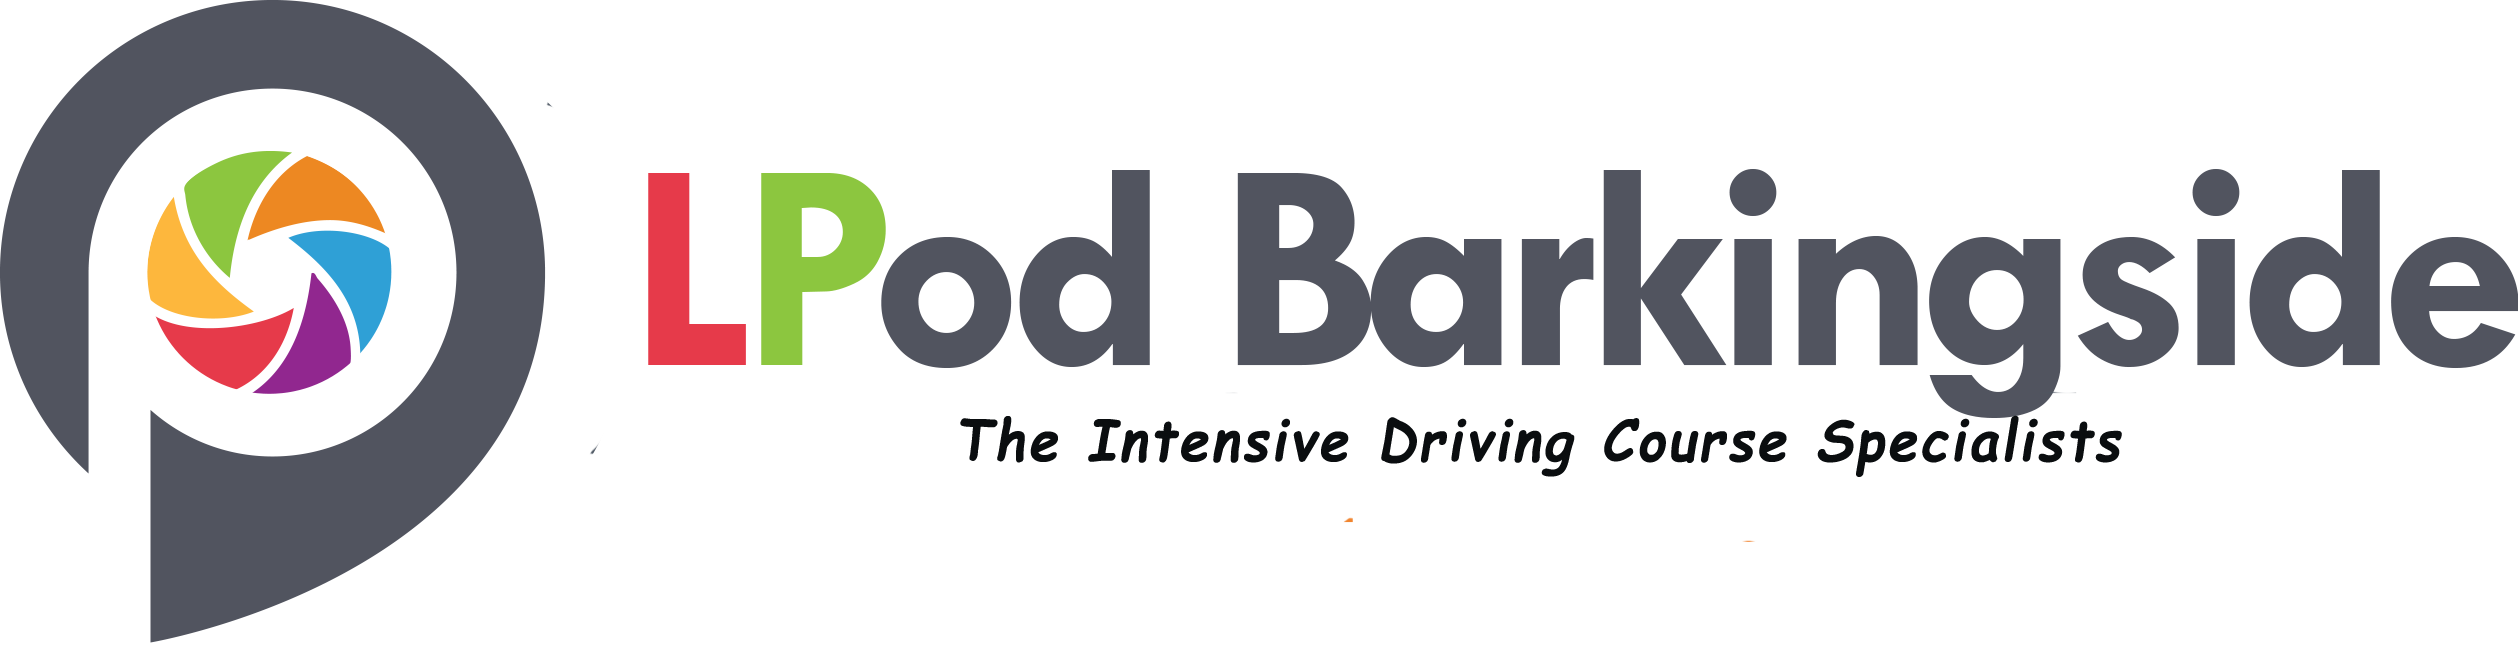 intensive driving courses barkingside, intensive driving school barkingside, intensive driving lessons barkingside, driving lessons barkingside, automatic driving lessons barkingside, fast pass driving courses barkingside, one week driving courses barkingside, crash driving courses barkingside